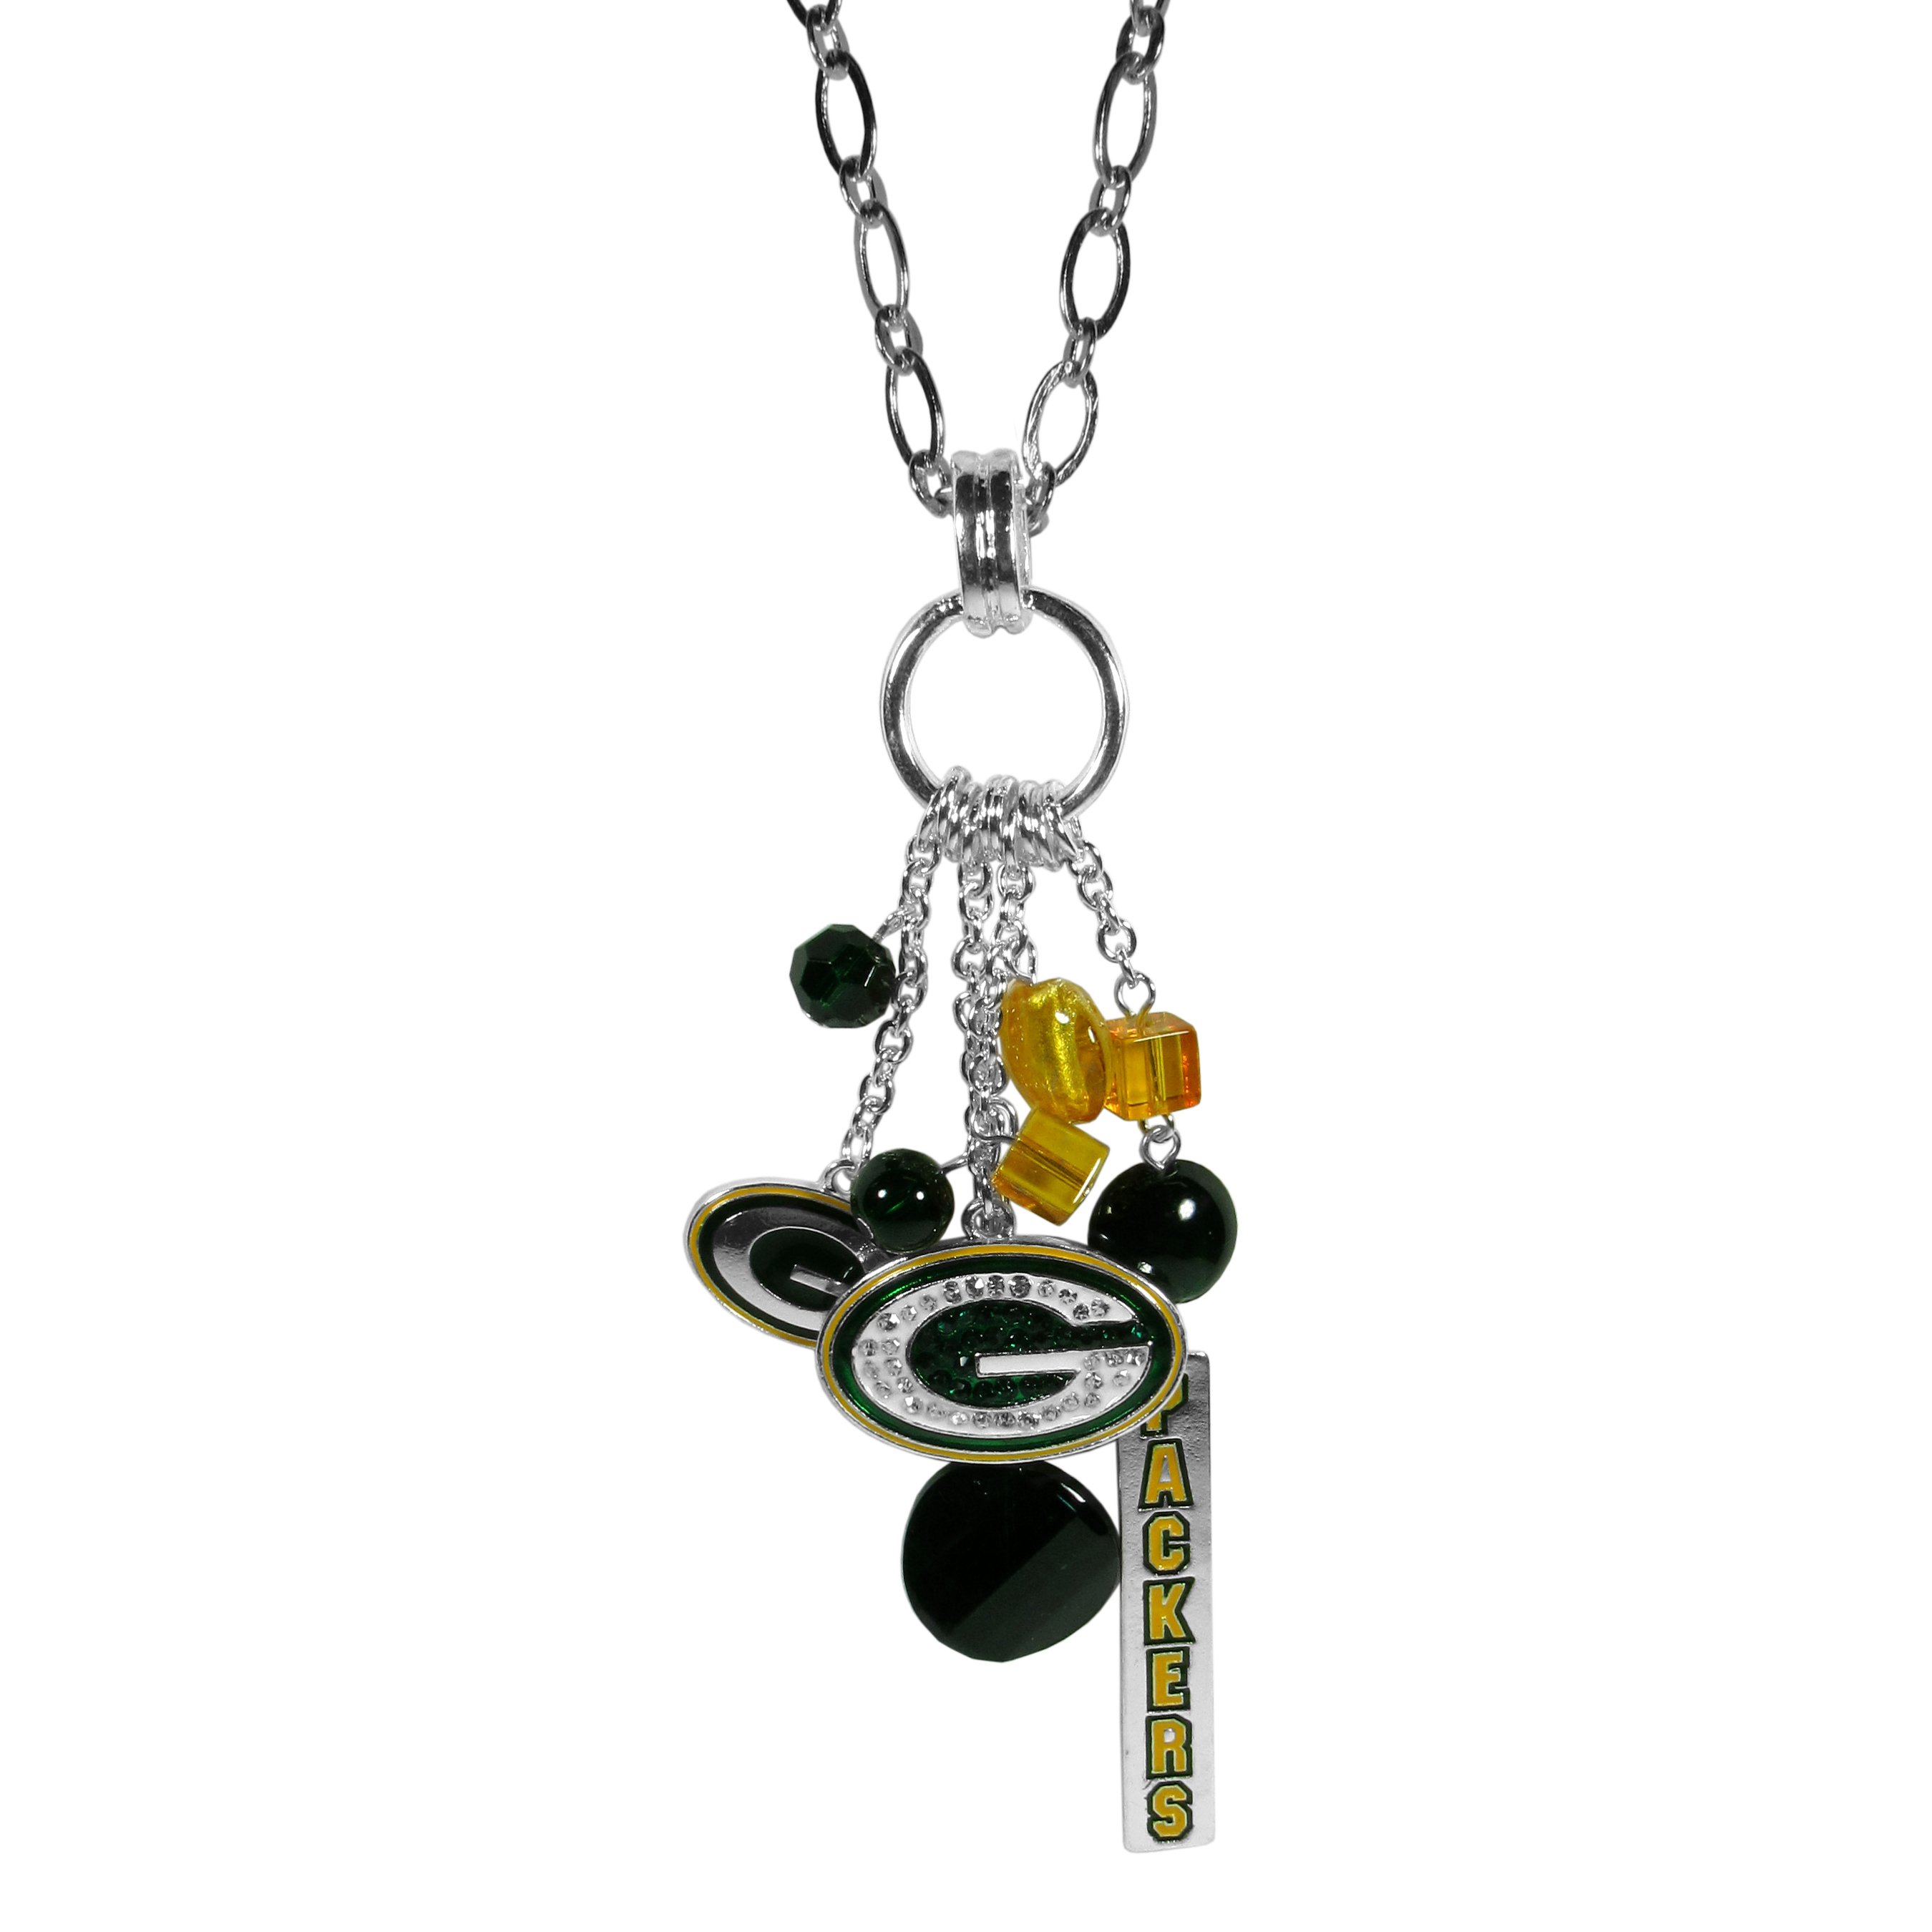 Green Bay Packers Cluster Necklace - Our trendy cluster necklace makes a big statement with a 30 inch, silver plated, link chain that features a stylish cluster of Green Bay Packers charms that hang an additional 4 inches off of the chain. This bold fashion jewelry piece has 4 chain lenghts in the cluster that have alternating color bauble beads and 2 metal team charms, one with crystals and a long bar charm with the team name.